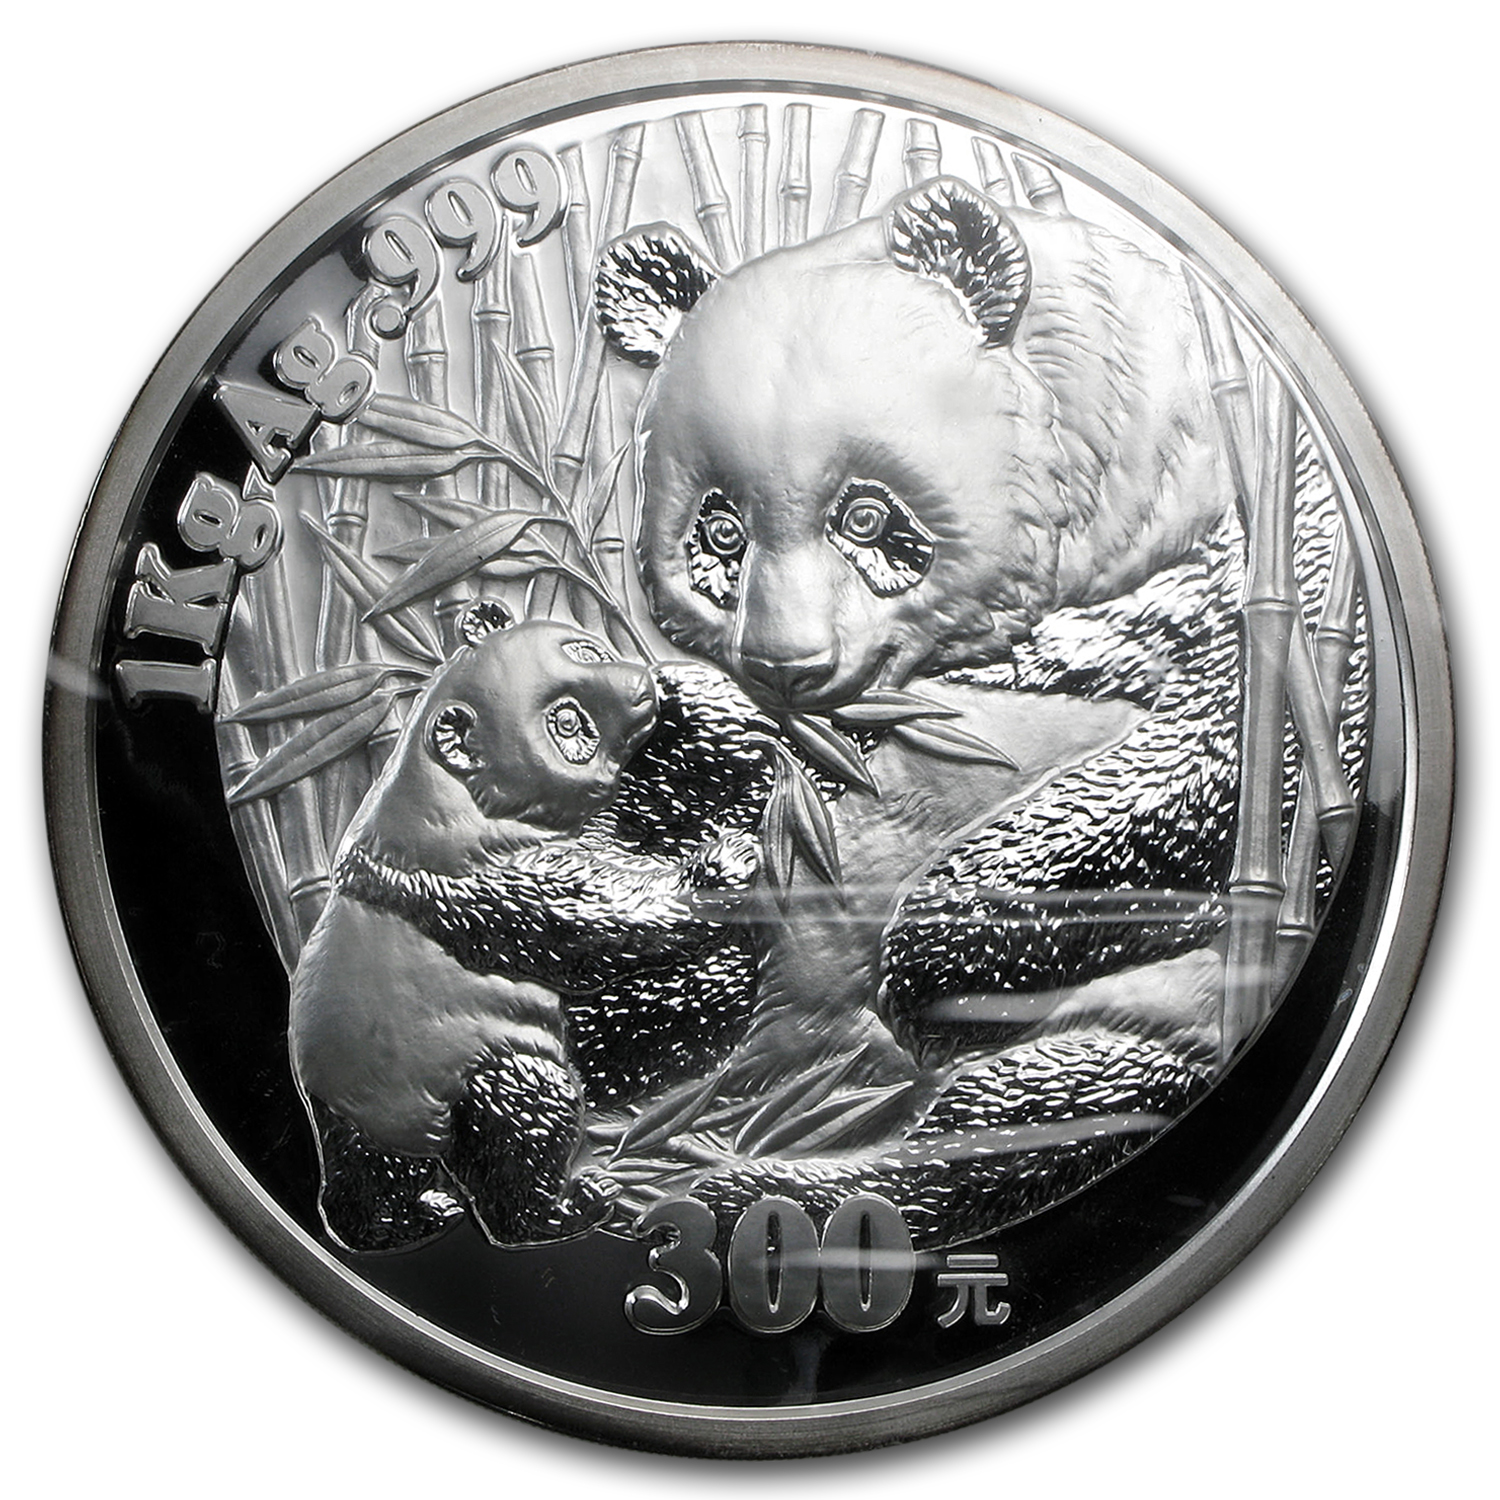 2005 China 1 kilo Silver Panda Proof (w/Box & COA)